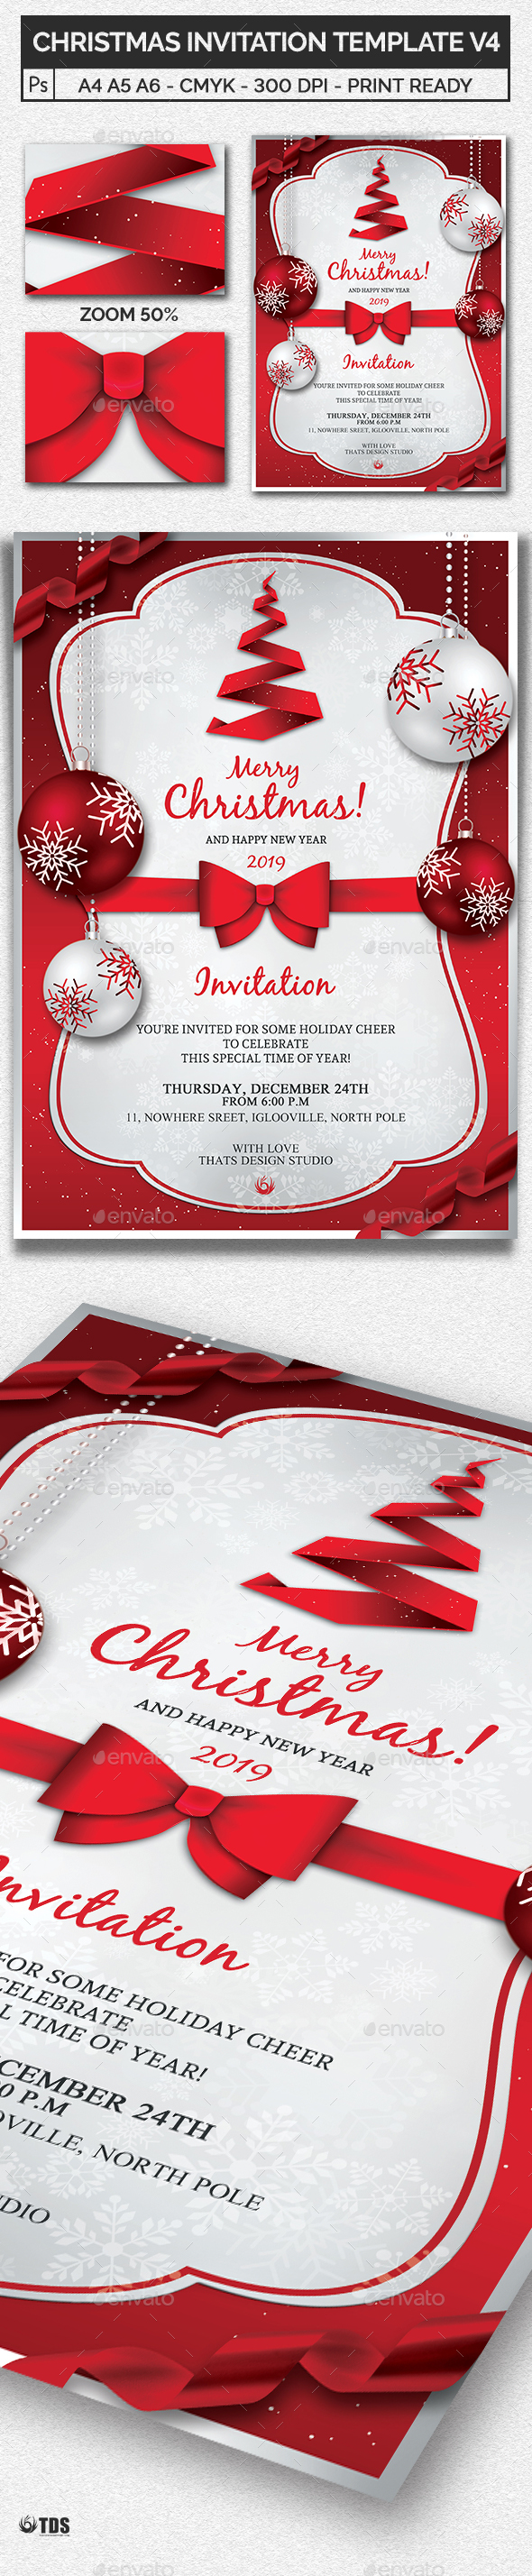 Christmas Invitation Template V4 - Invitations Cards & Invites